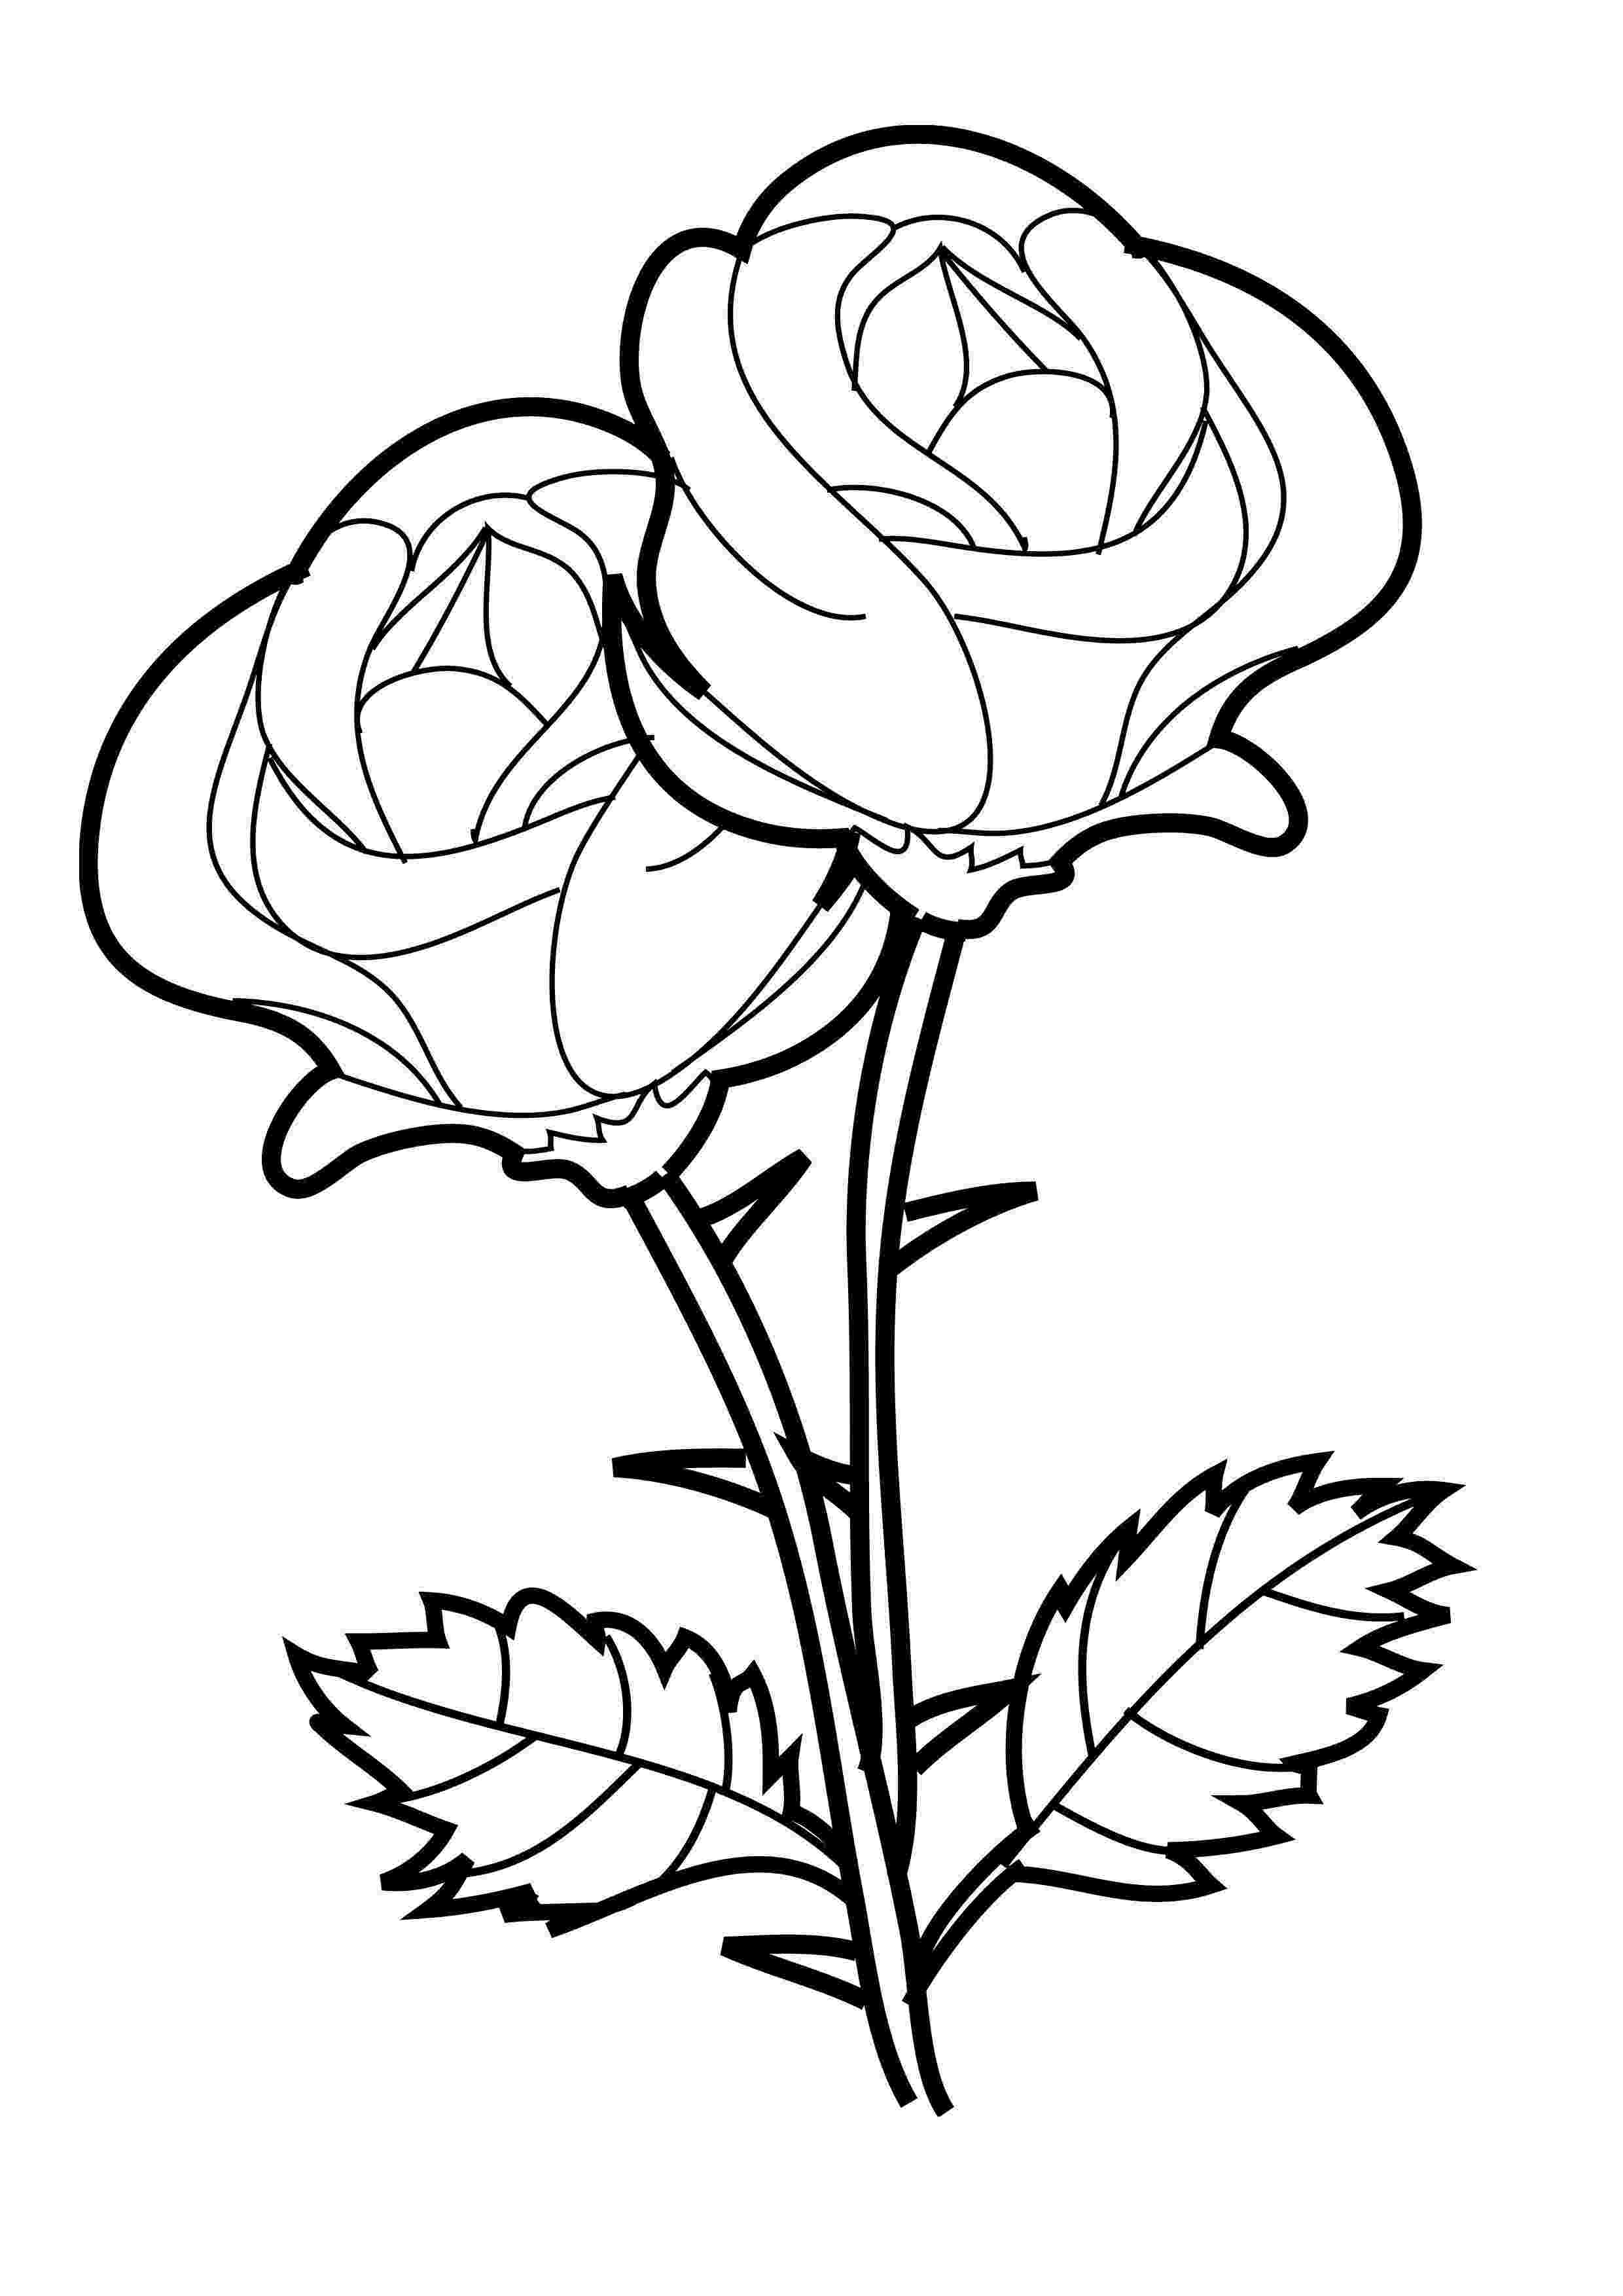 rose coloring pages free printable roses coloring pages for kids pages coloring rose